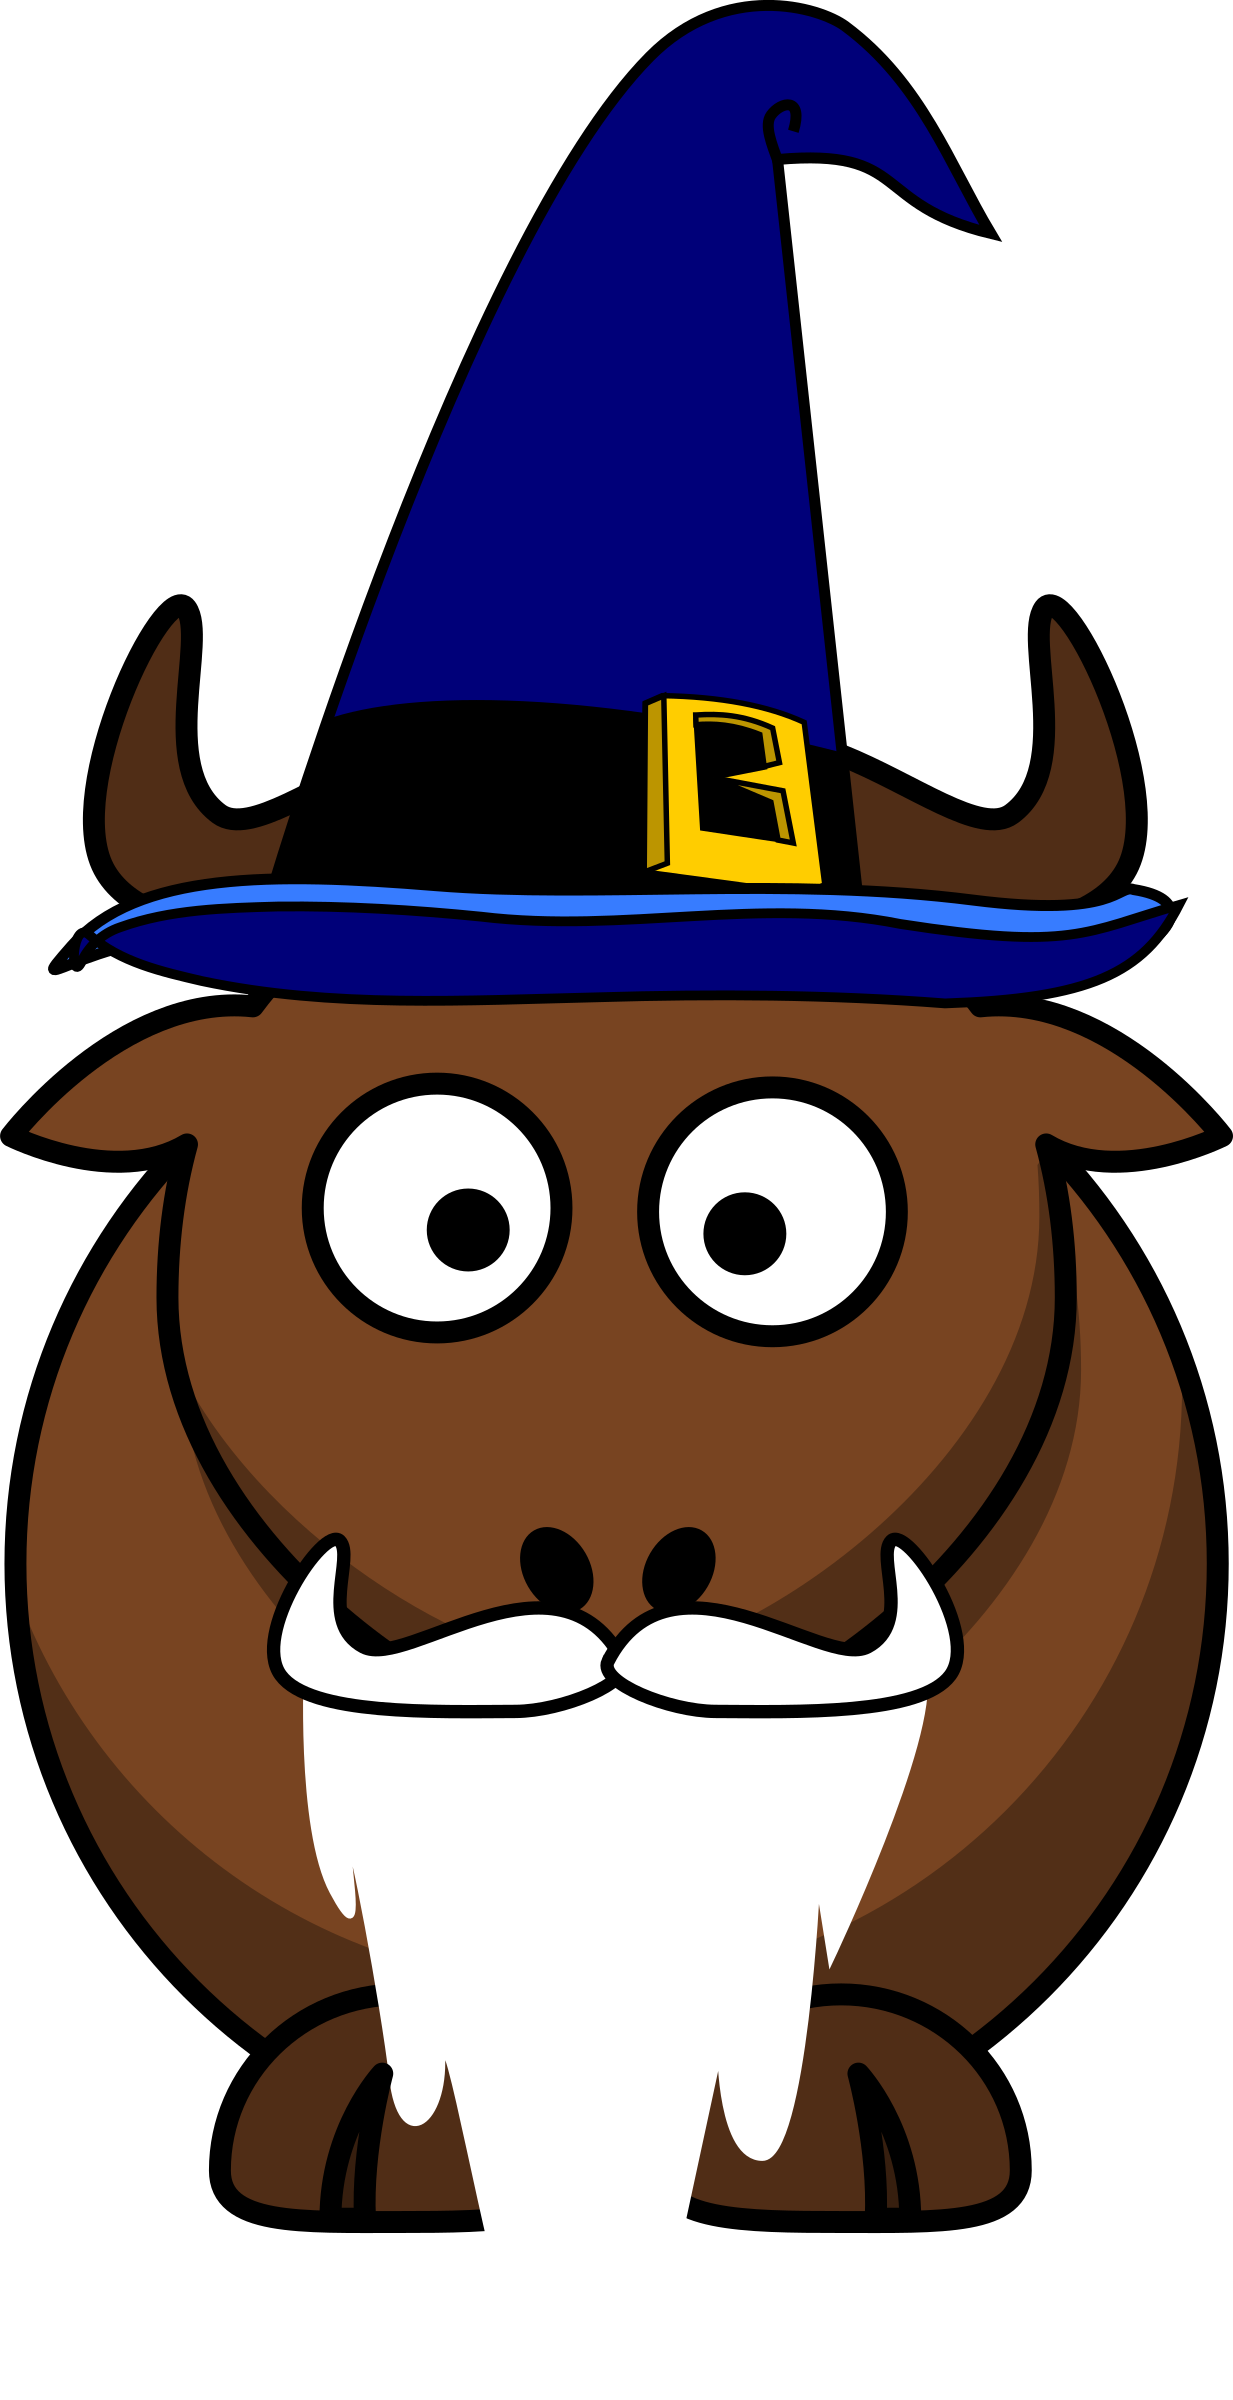 Cartoon Gnu Wizard by ephemeralwaves